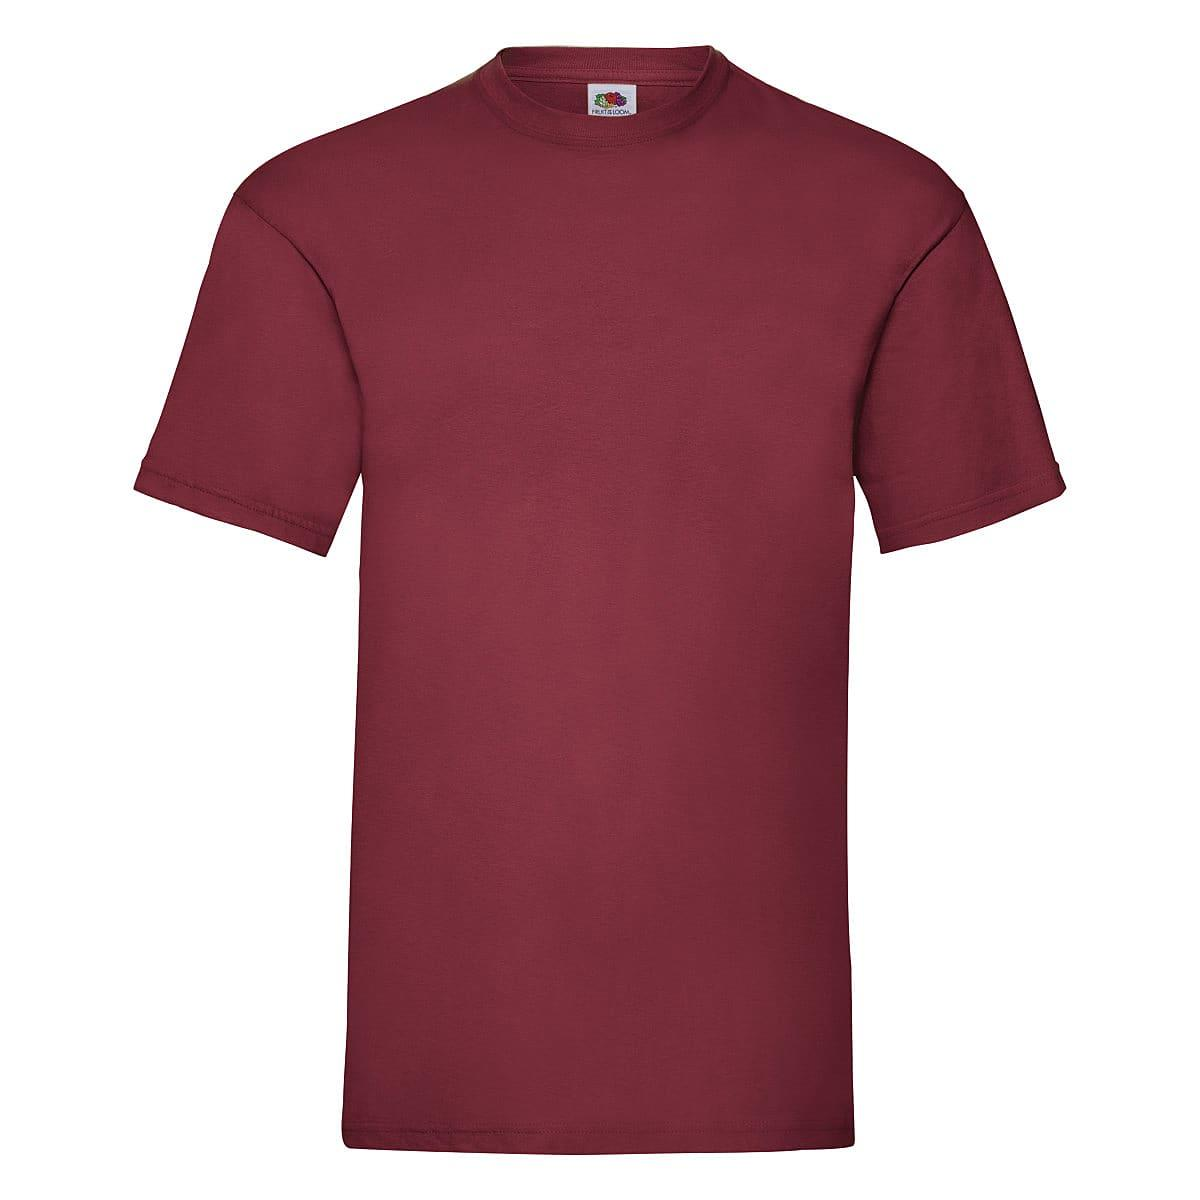 Fruit Of The Loom Valueweight T-Shirt in Brick Red (Product Code: 61036)